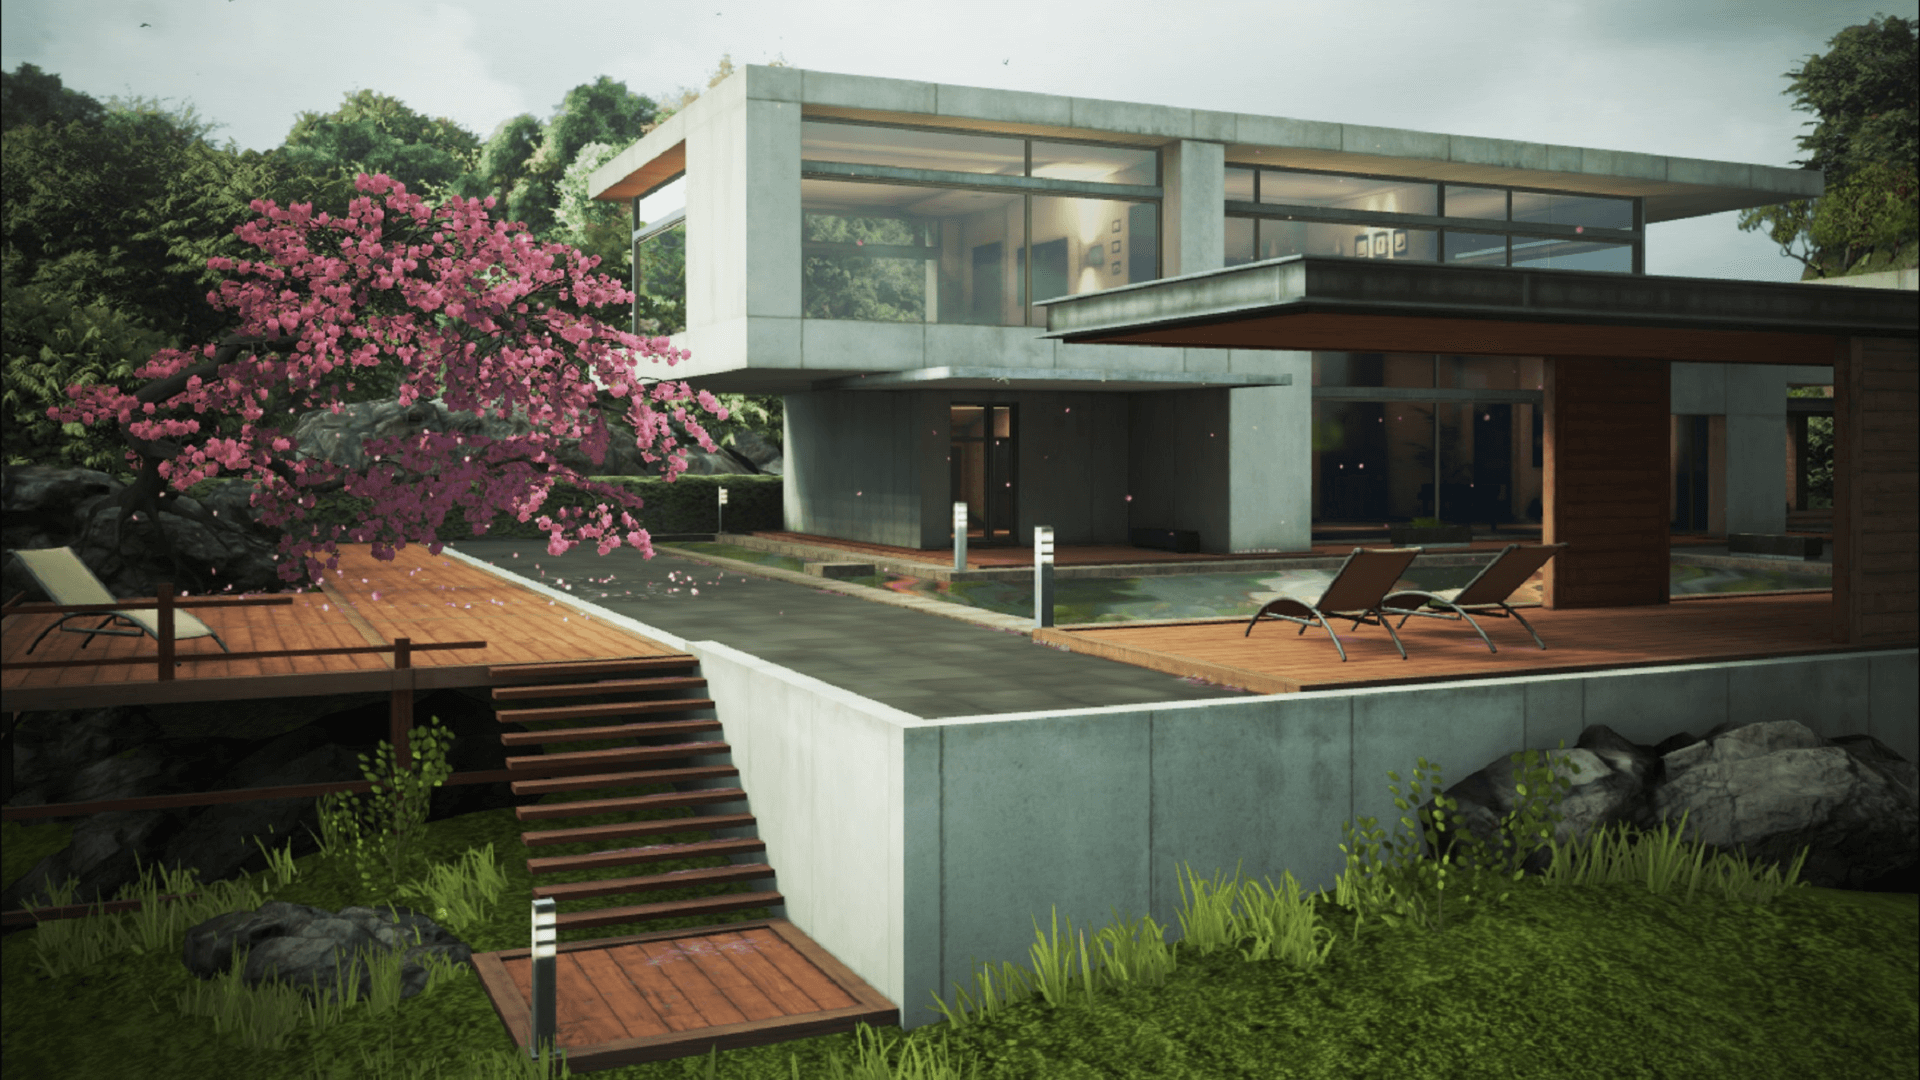 Epic Zen Garden by Epic Games in Epic Content,Environments - UE4